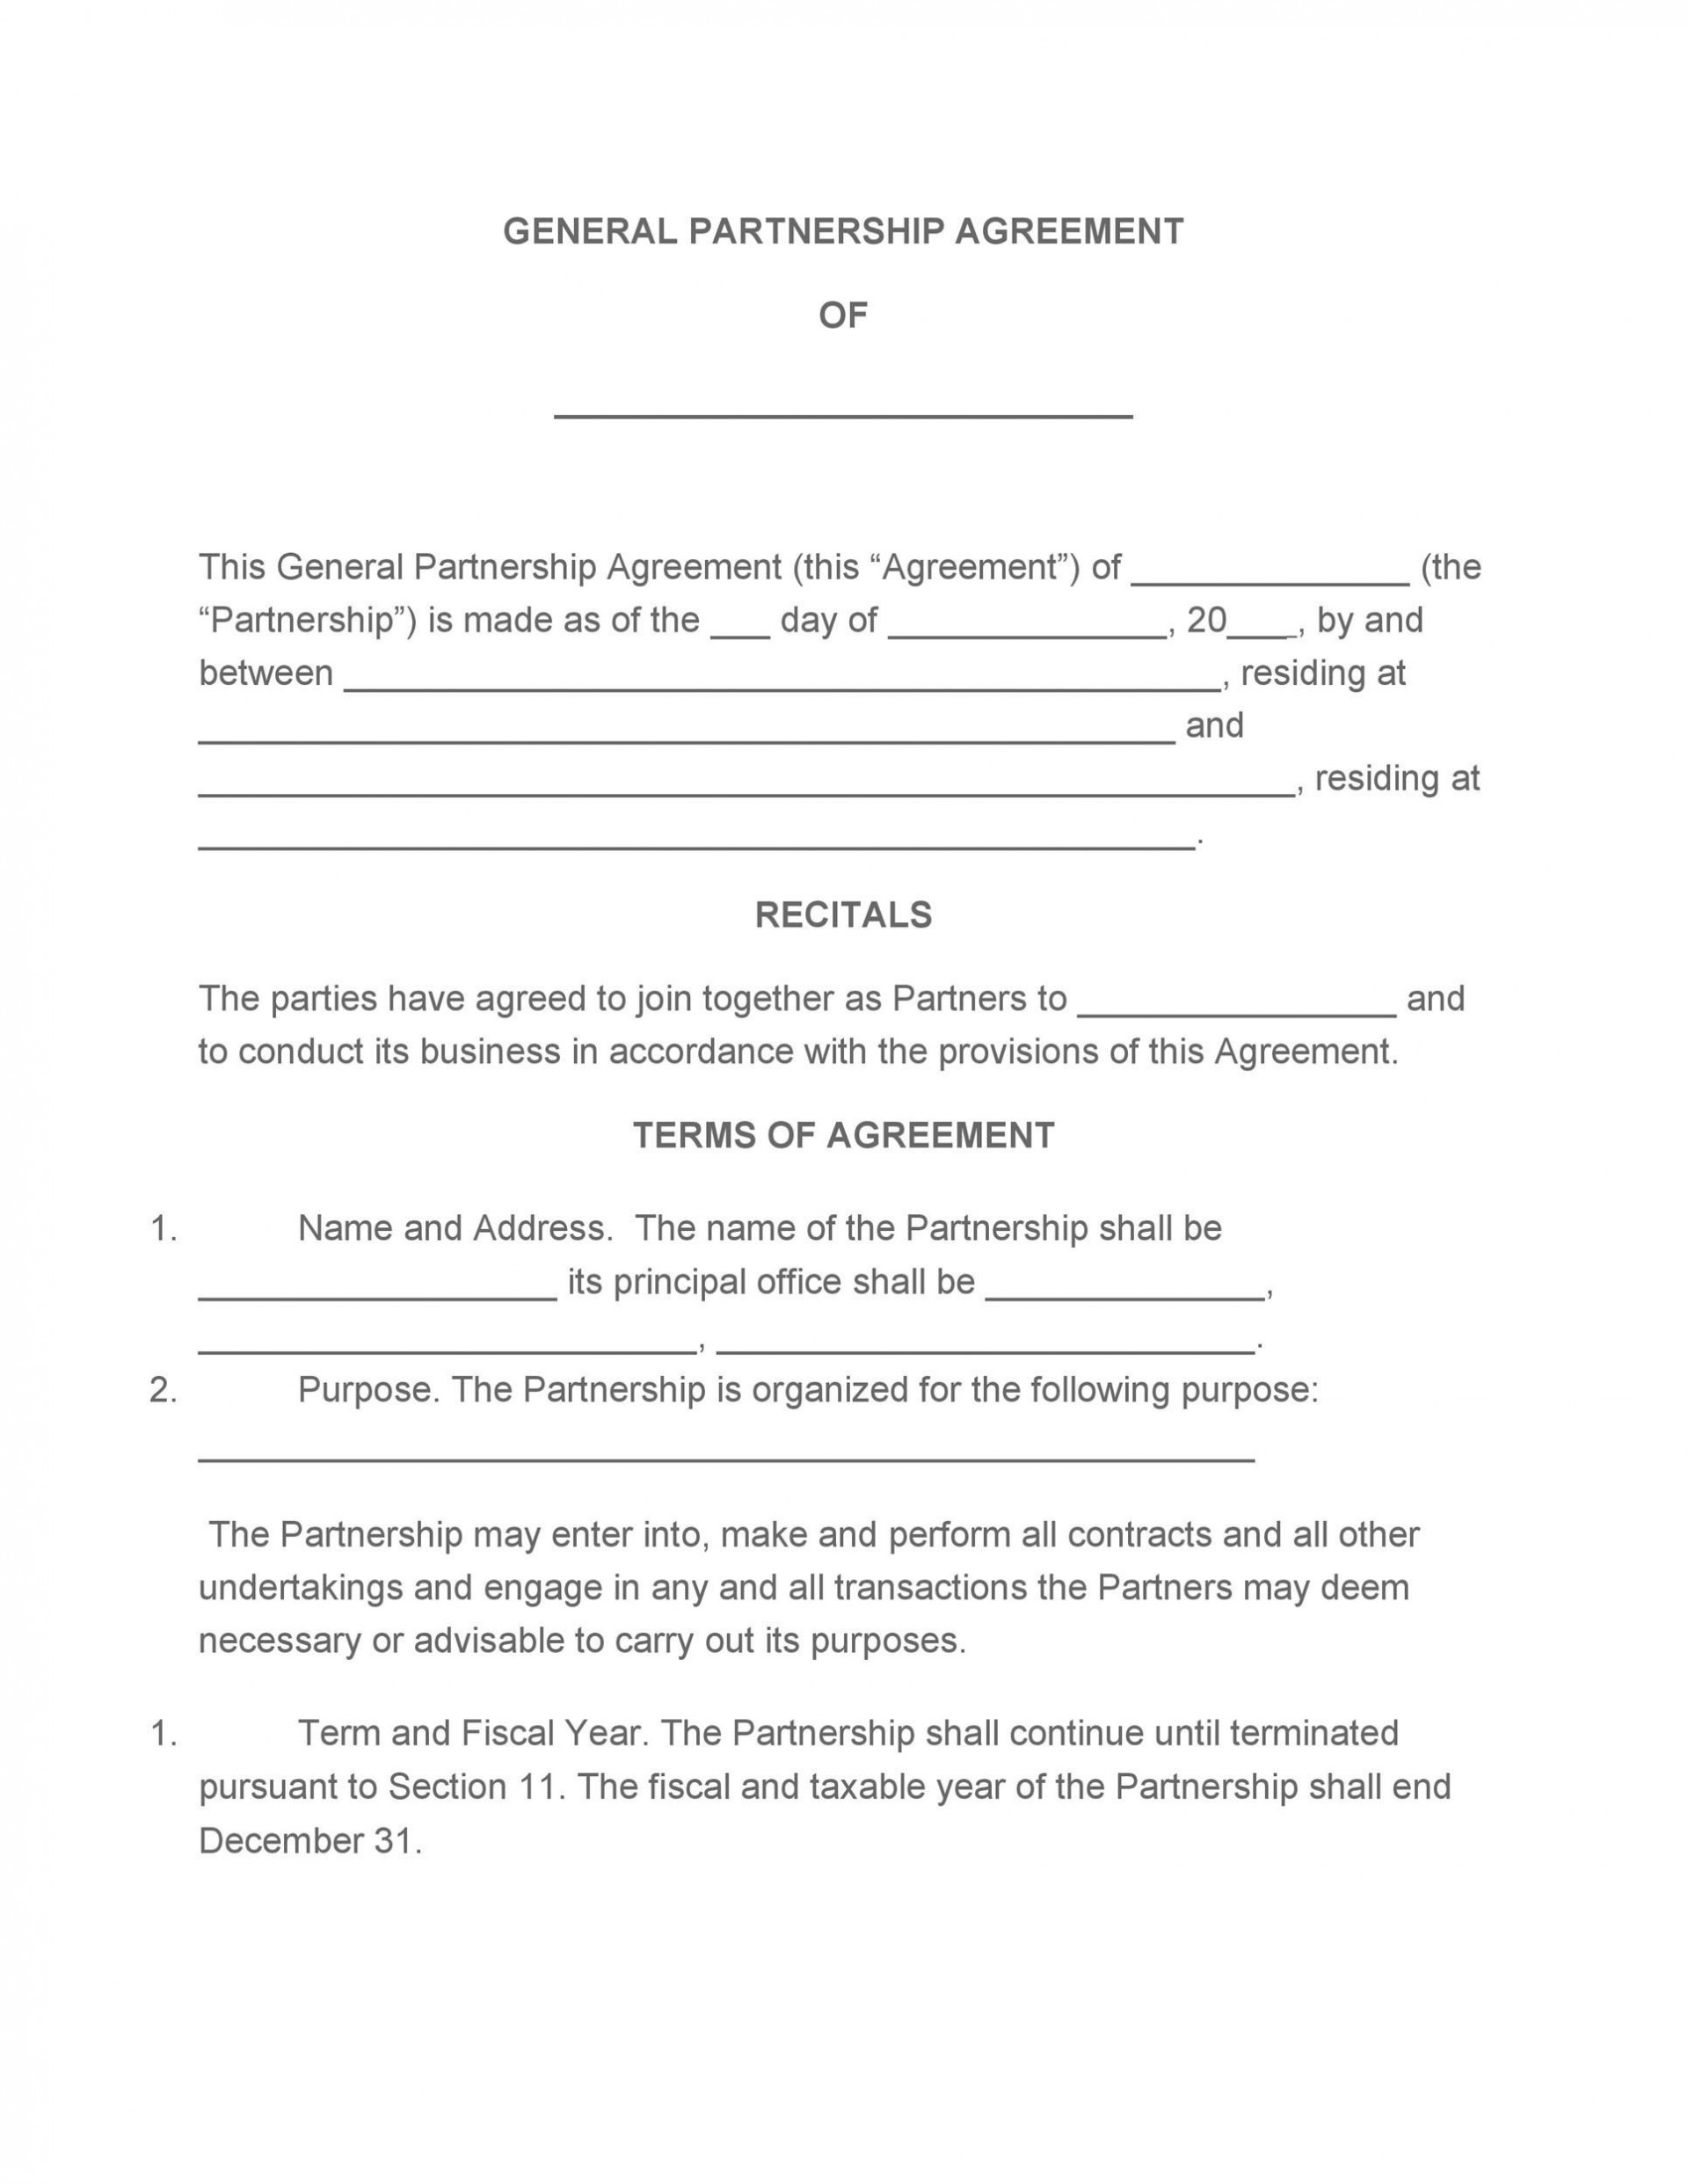 005 Remarkable Partnership Agreement Template Free Picture  Llc Example Sample1920